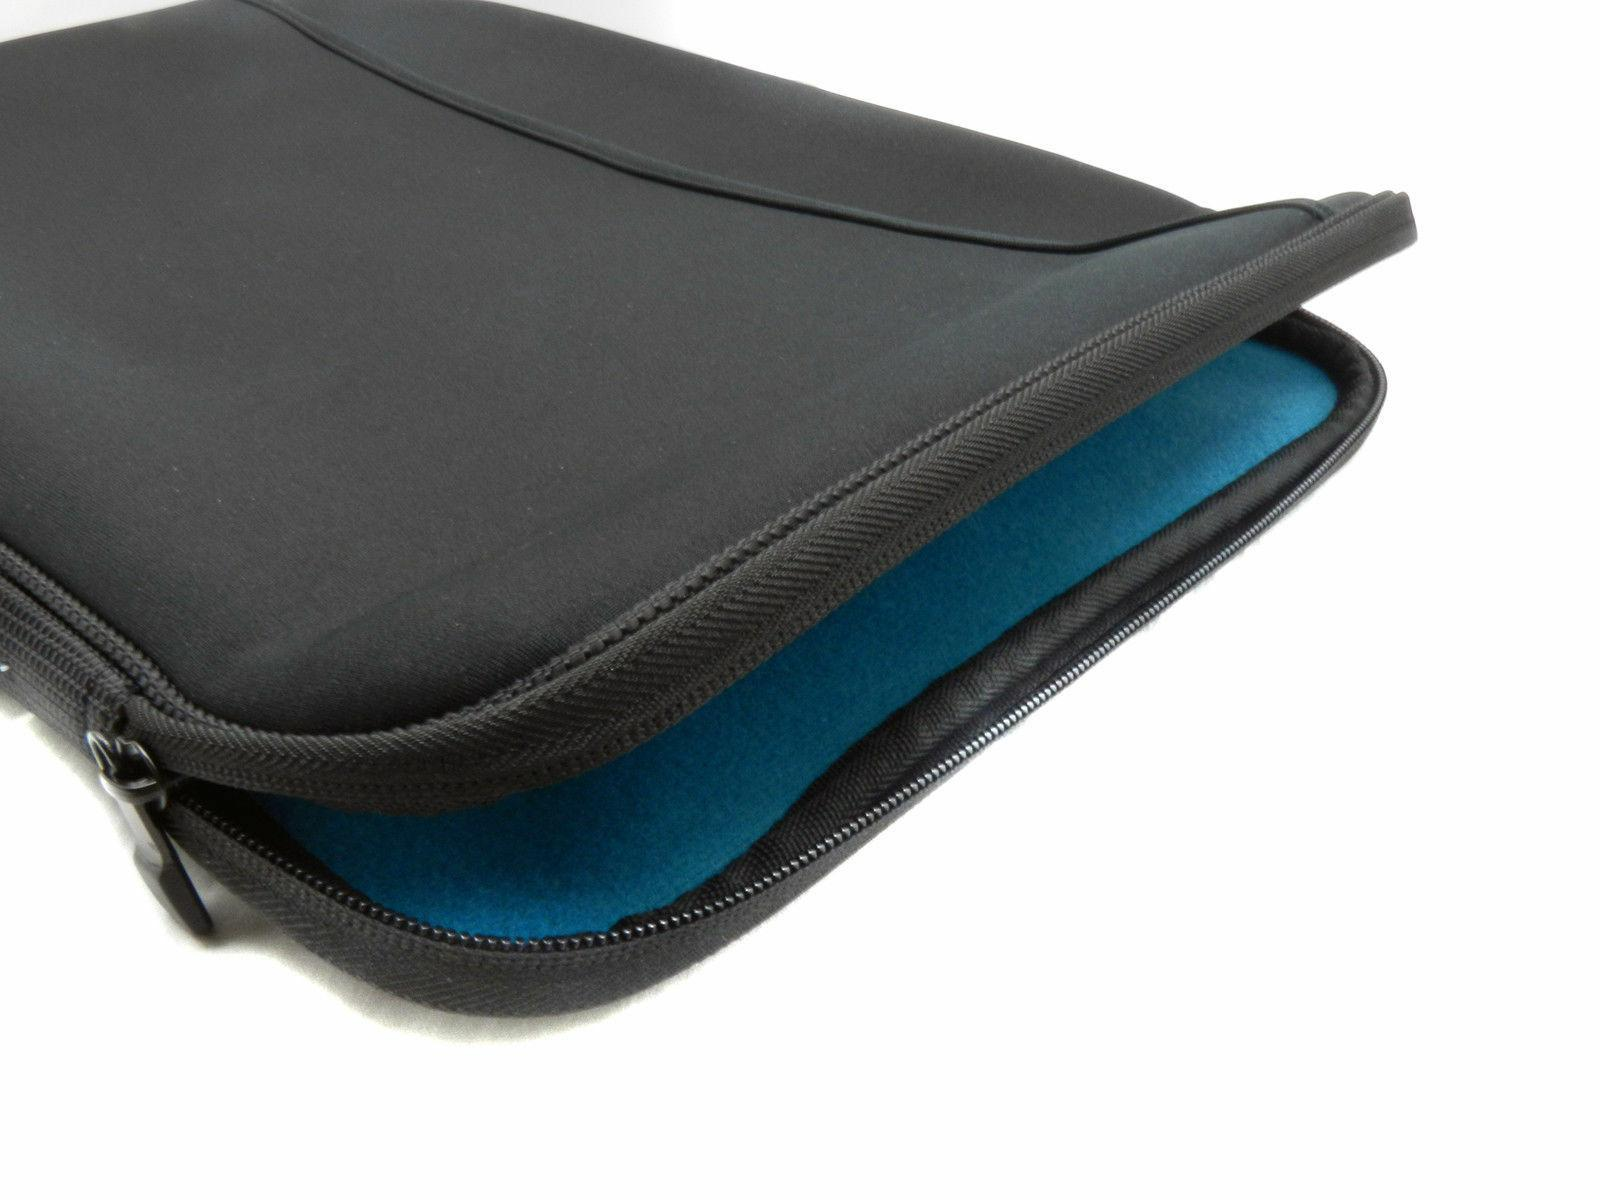 Logitech Black Notebook Case Cover For 15-15.6""